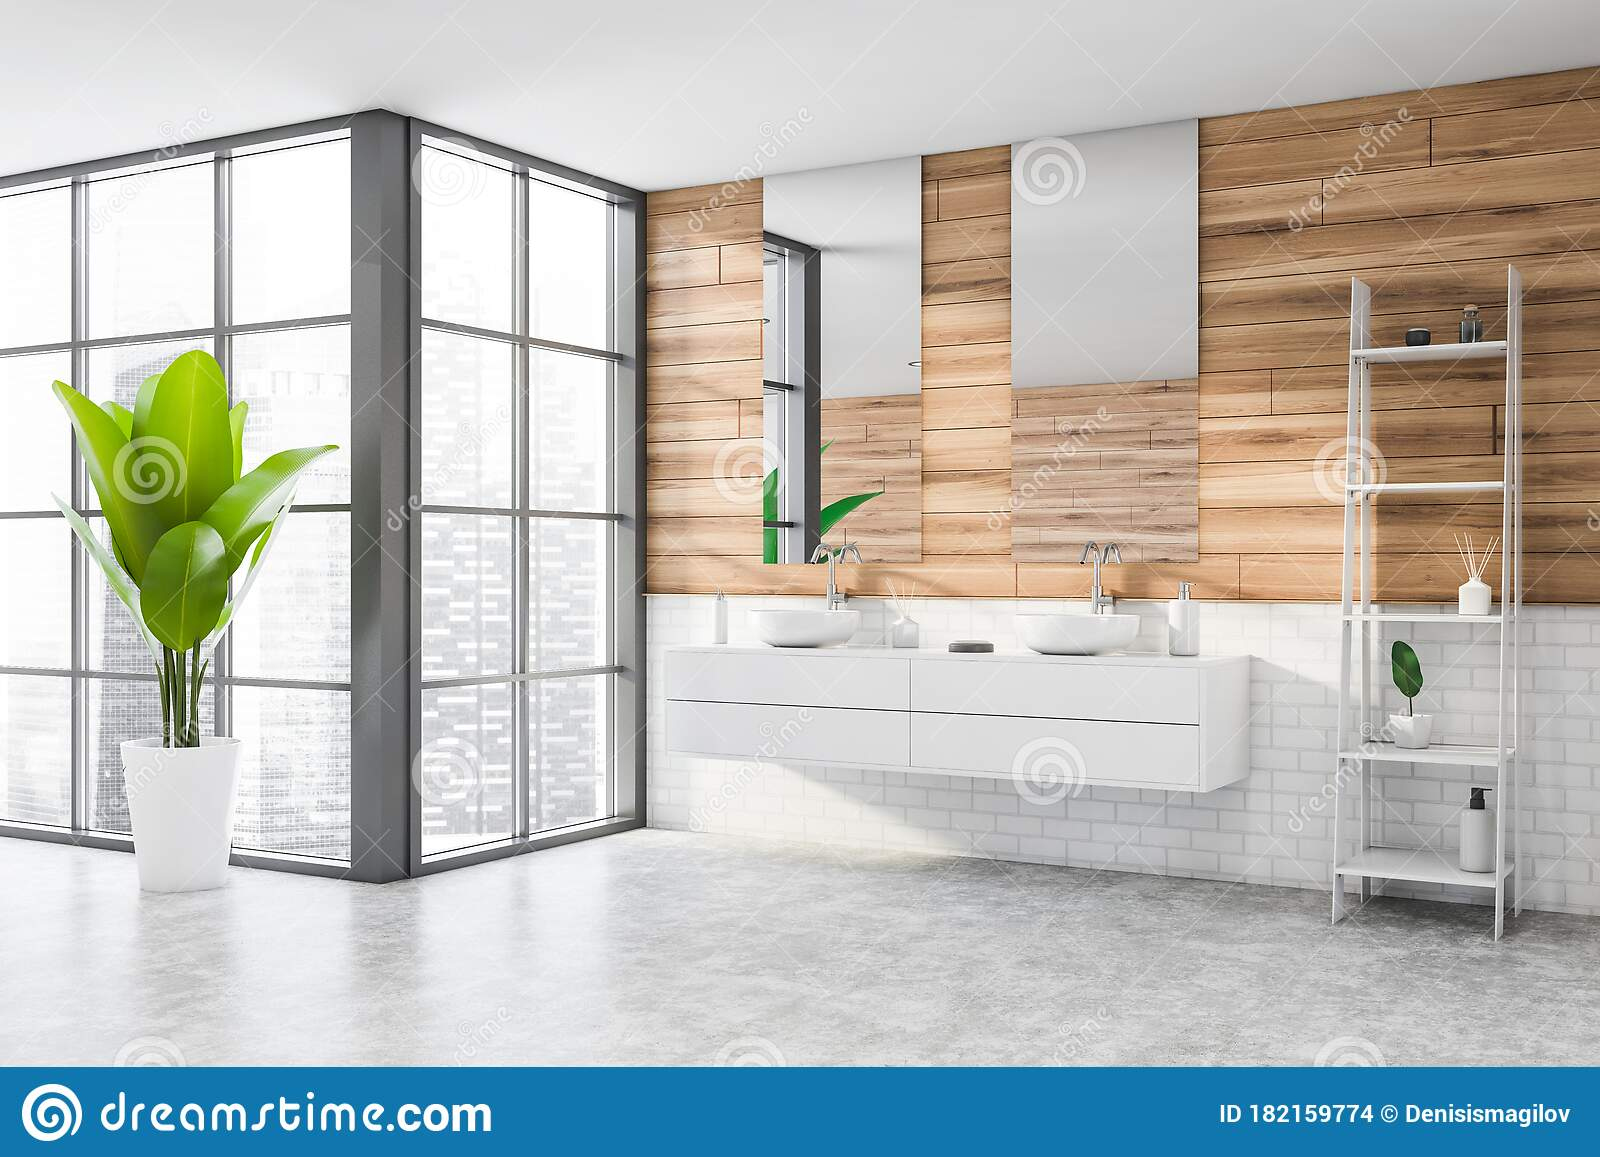 Wooden And Brick Bathroom Corner Double Sink Stock Illustration Illustration Of Empty Relaxation 182159774